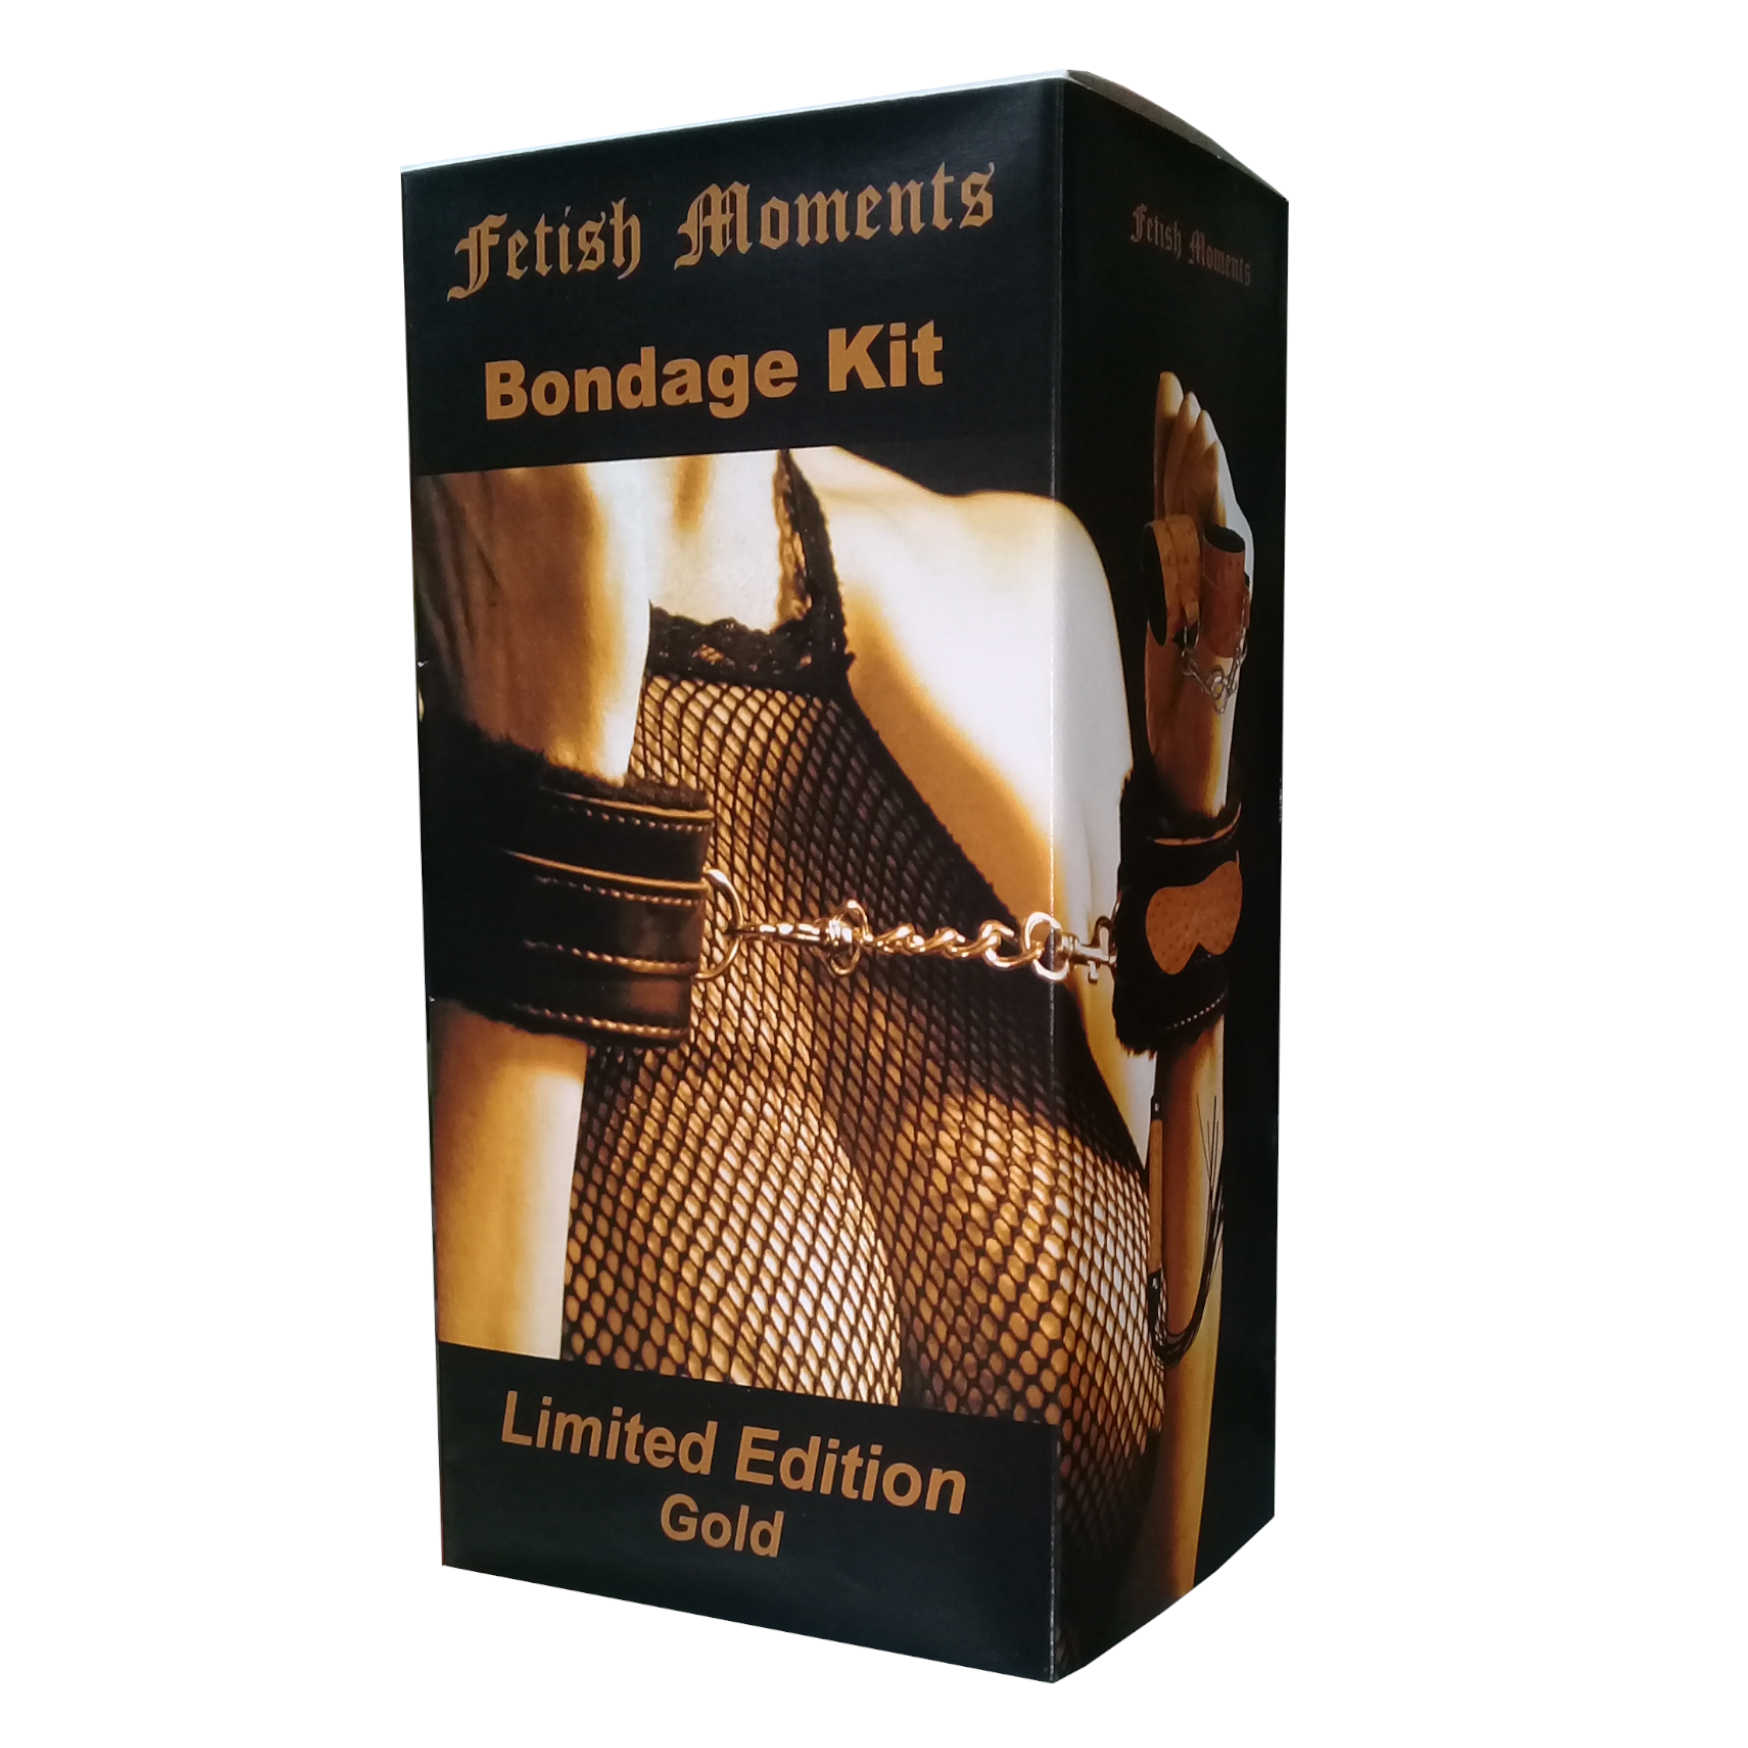 Limited Edition Bondage Kit Gold